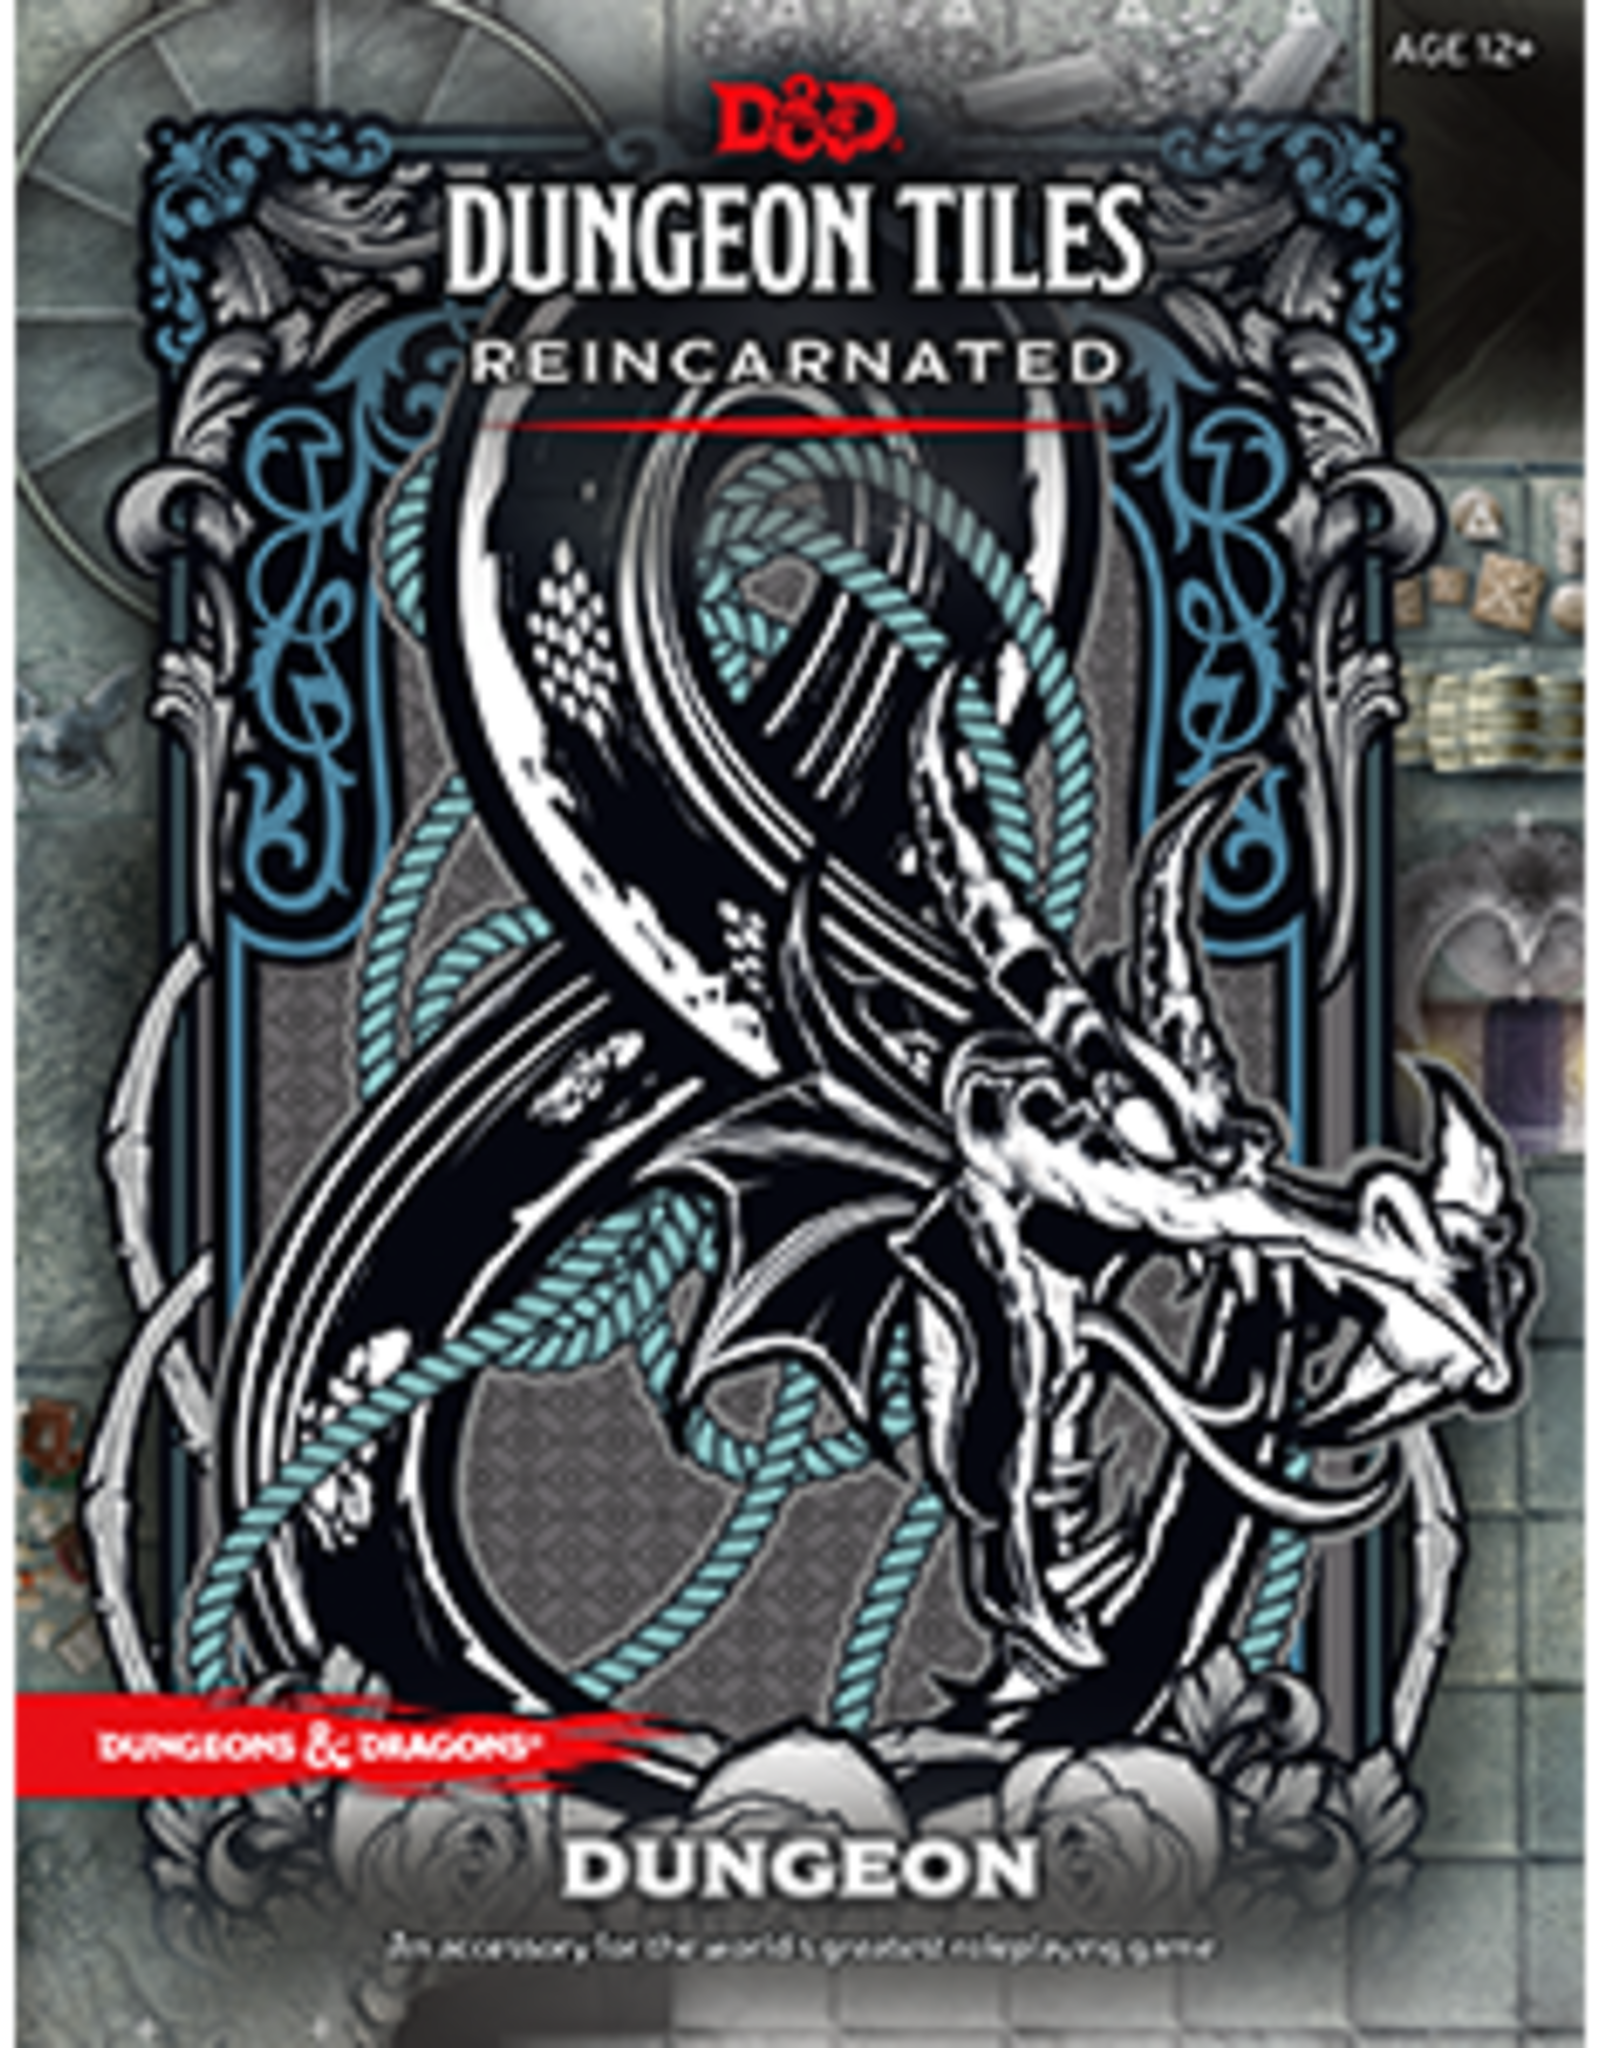 Wizards of the Coast Dungeons & Dragons Dungeon Tiles Reincarnated: Dungeon